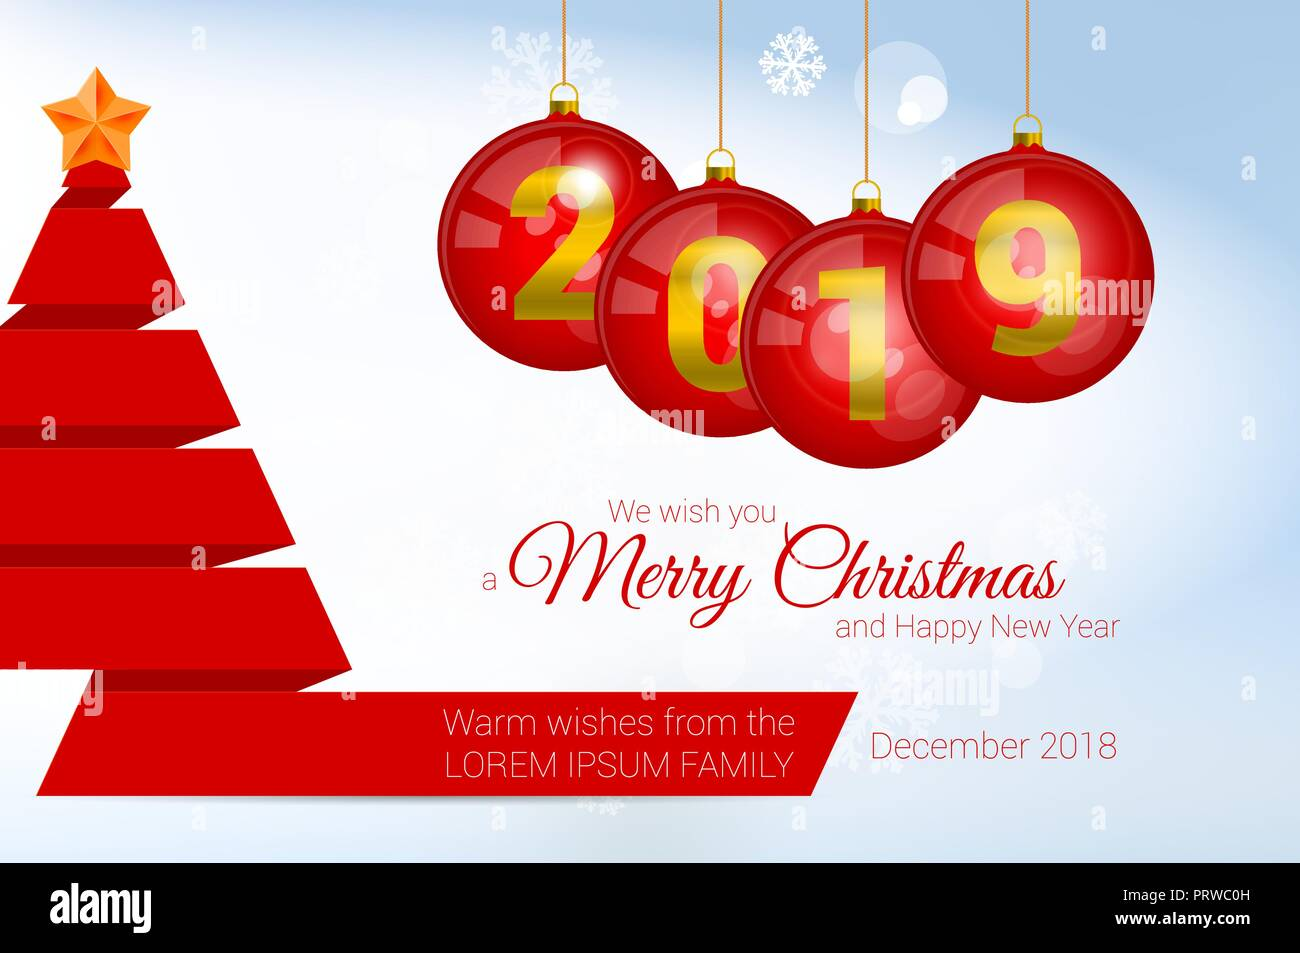 2019 vector christmas greeting card template merry christmas and happy new year design elements resource for creating postcards calendars or posters